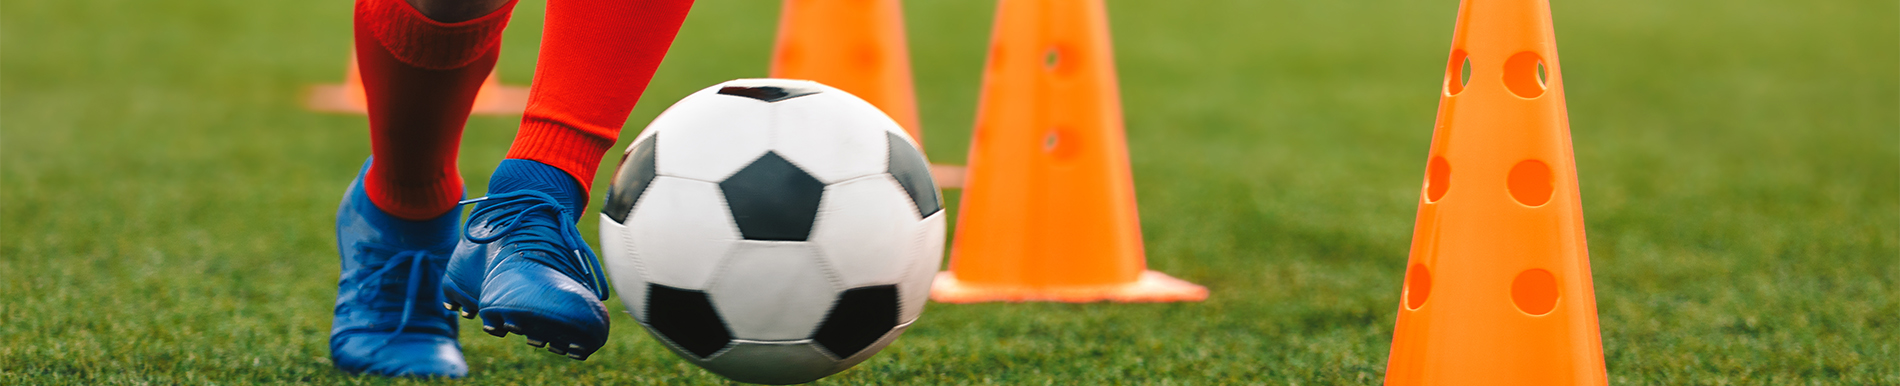 https://www.healthychildren.org/SiteCollectionImage-Homepage-Banners/youth-soccer-player-dribbling-drill-feet.jpg?csf=1&e=dcm29o